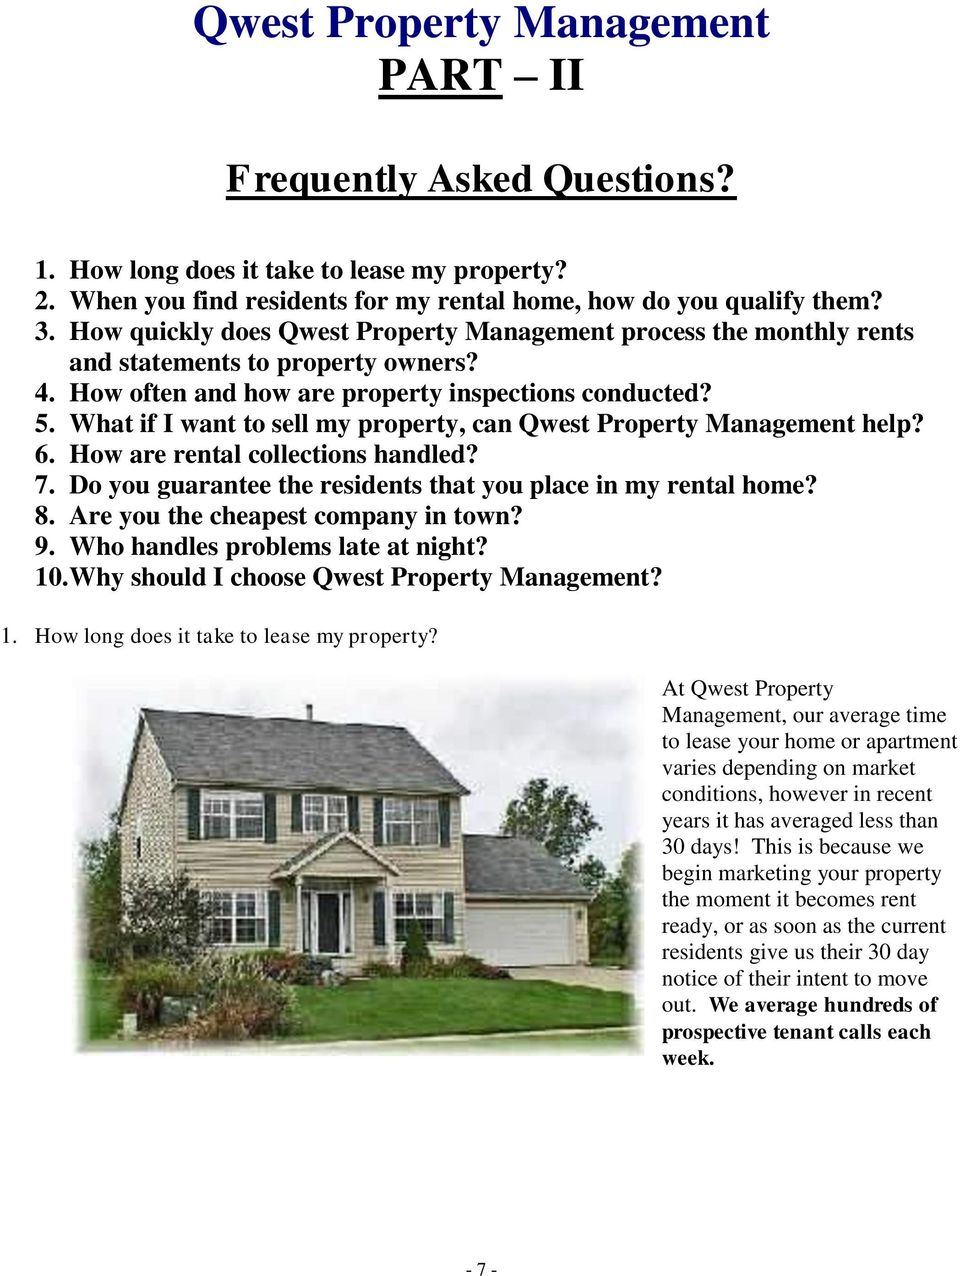 What if I want to sell my property, can Qwest Property Management help? 6. How are rental collections handled? 7. Do you guarantee the residents that you place in my rental home? 8.